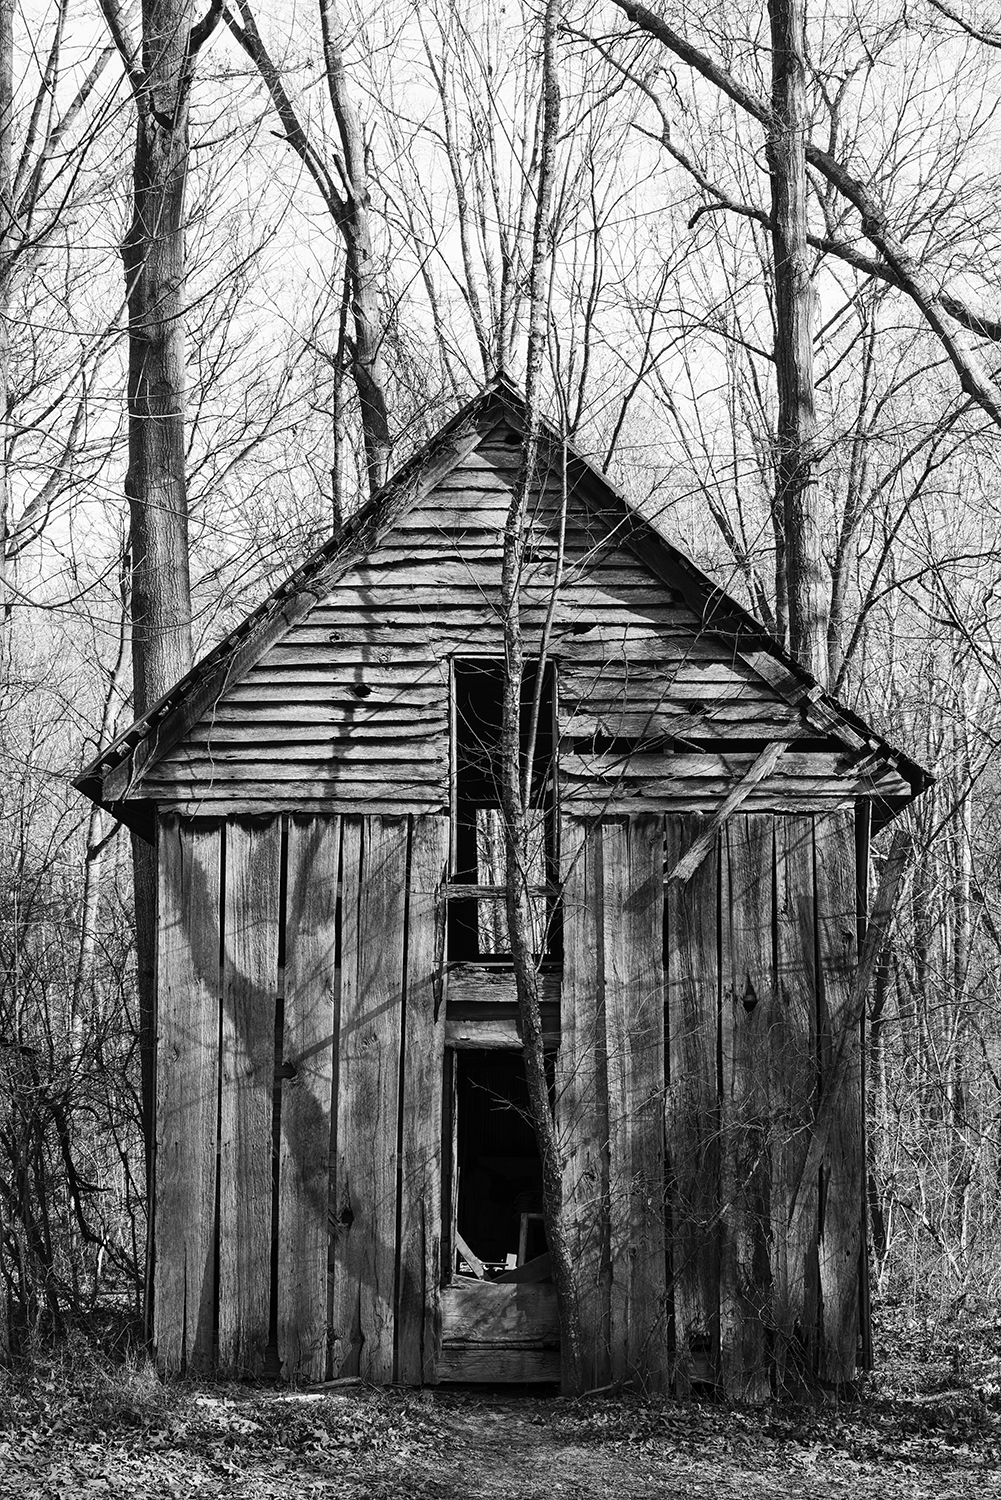 Abandoned Two-Story Farm House in the Woods - Black and White Photograph by Keith Dotson.